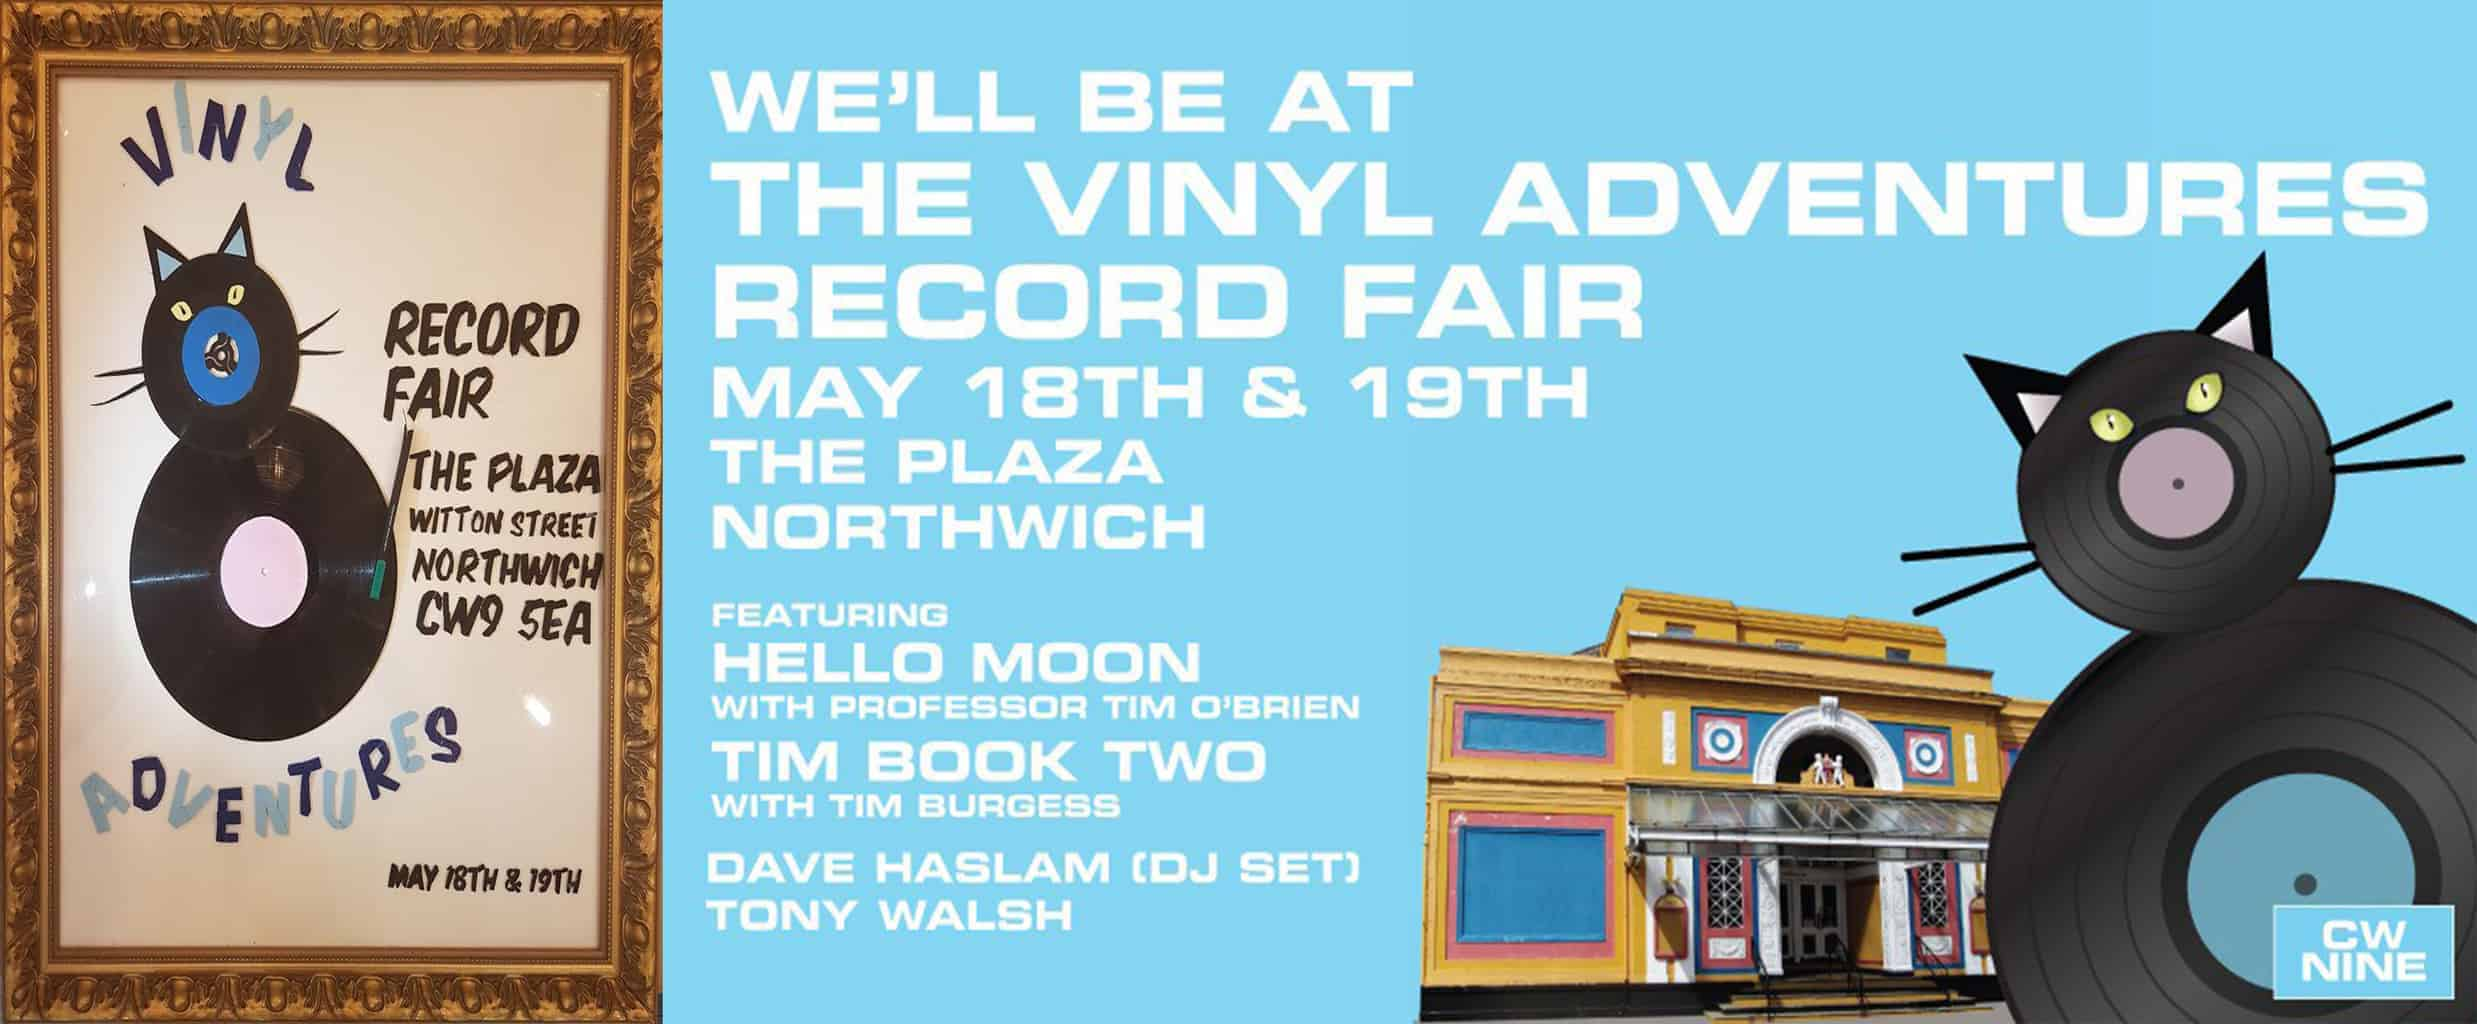 vinyl adventures, records fair